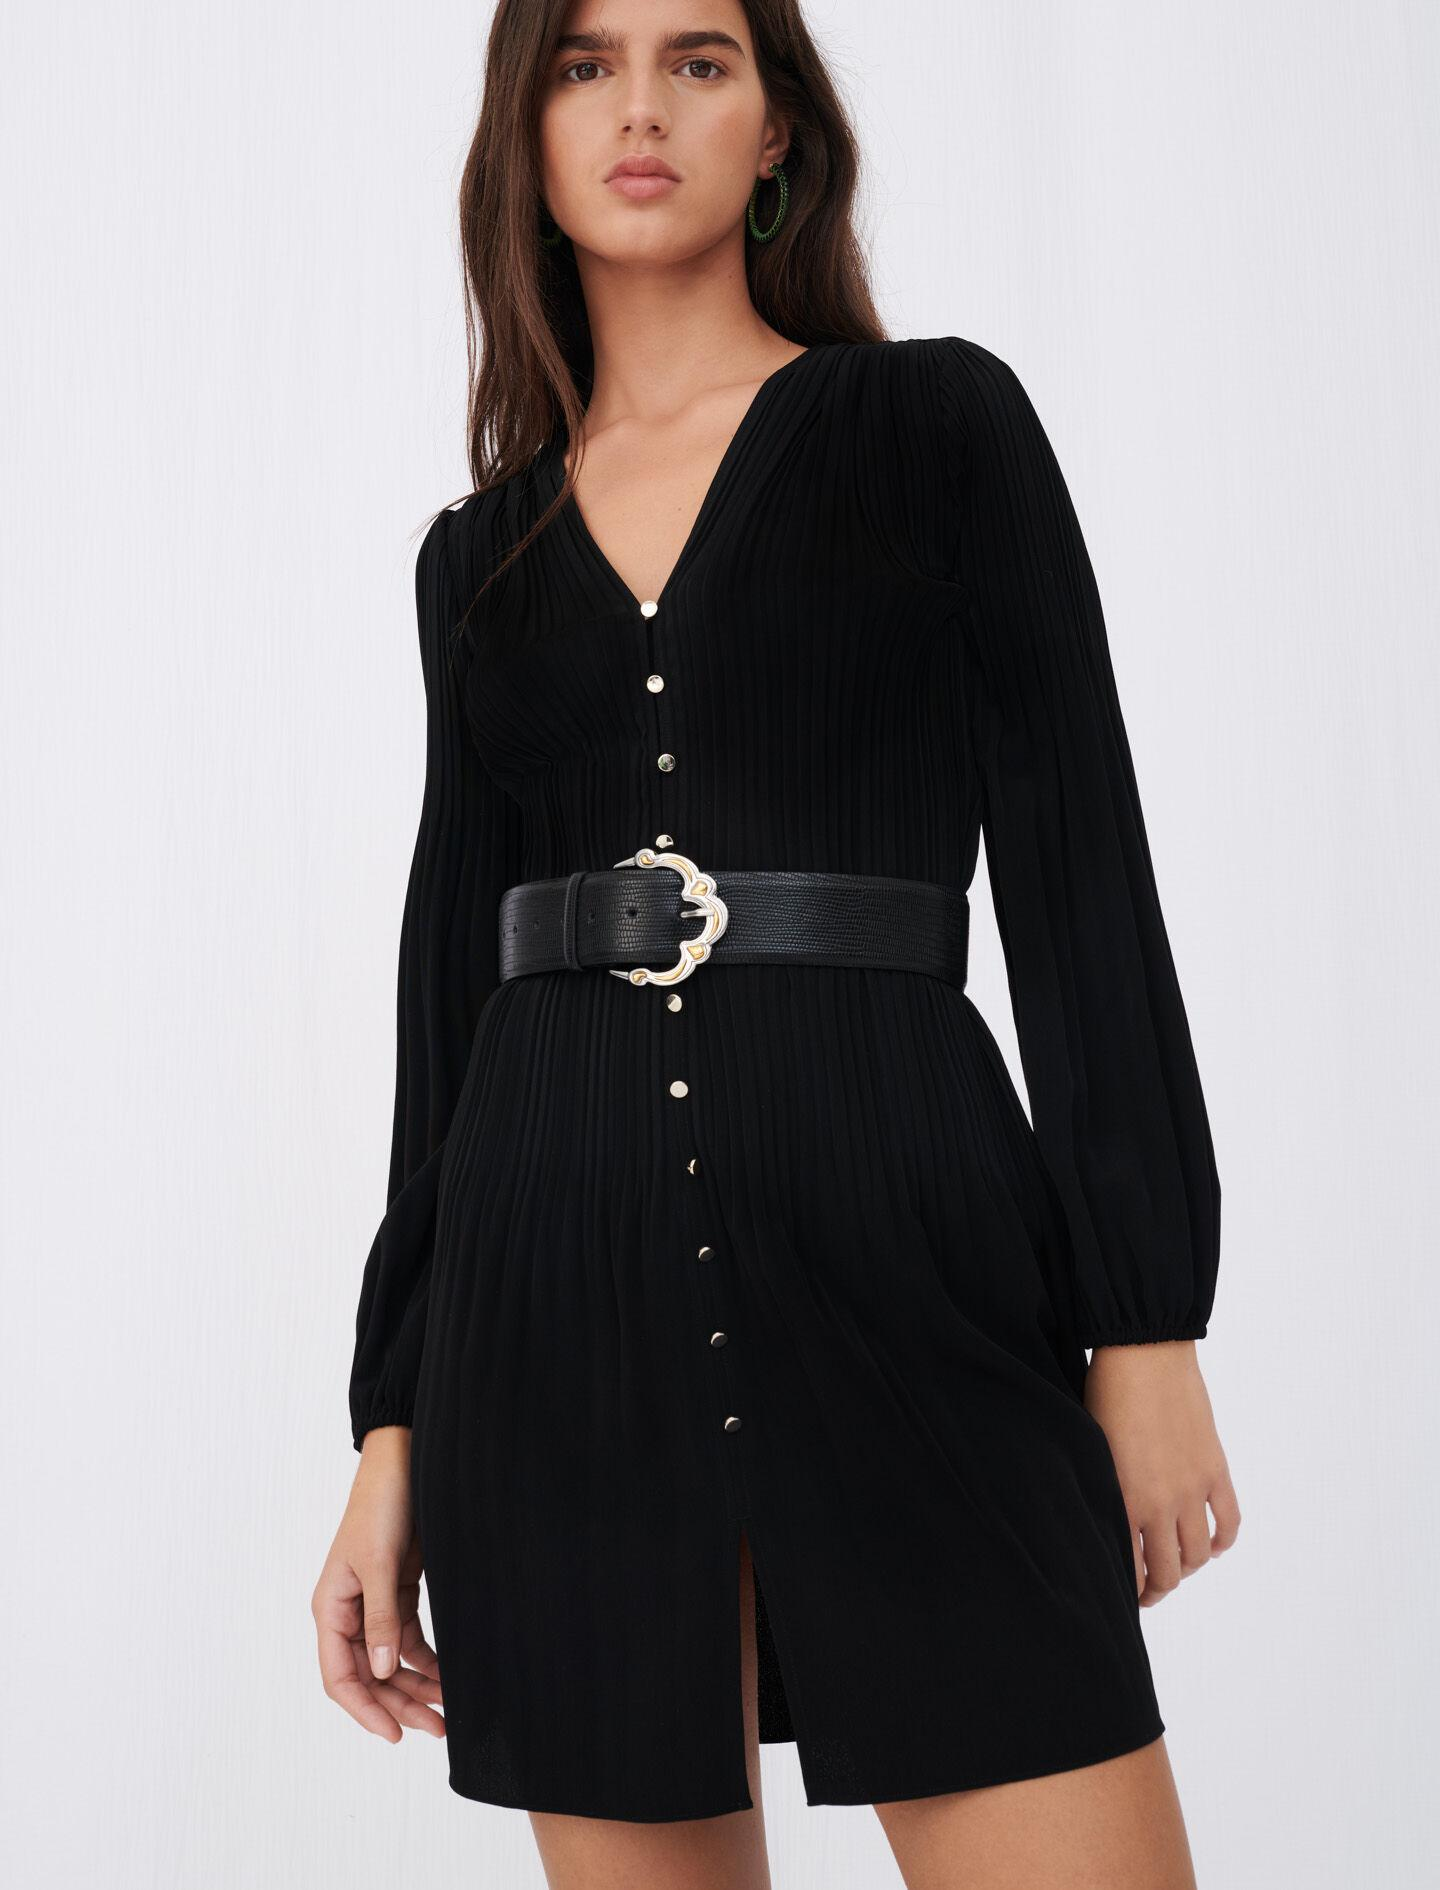 ALL-OVER PLEAT DRESS WITH BUTTONS